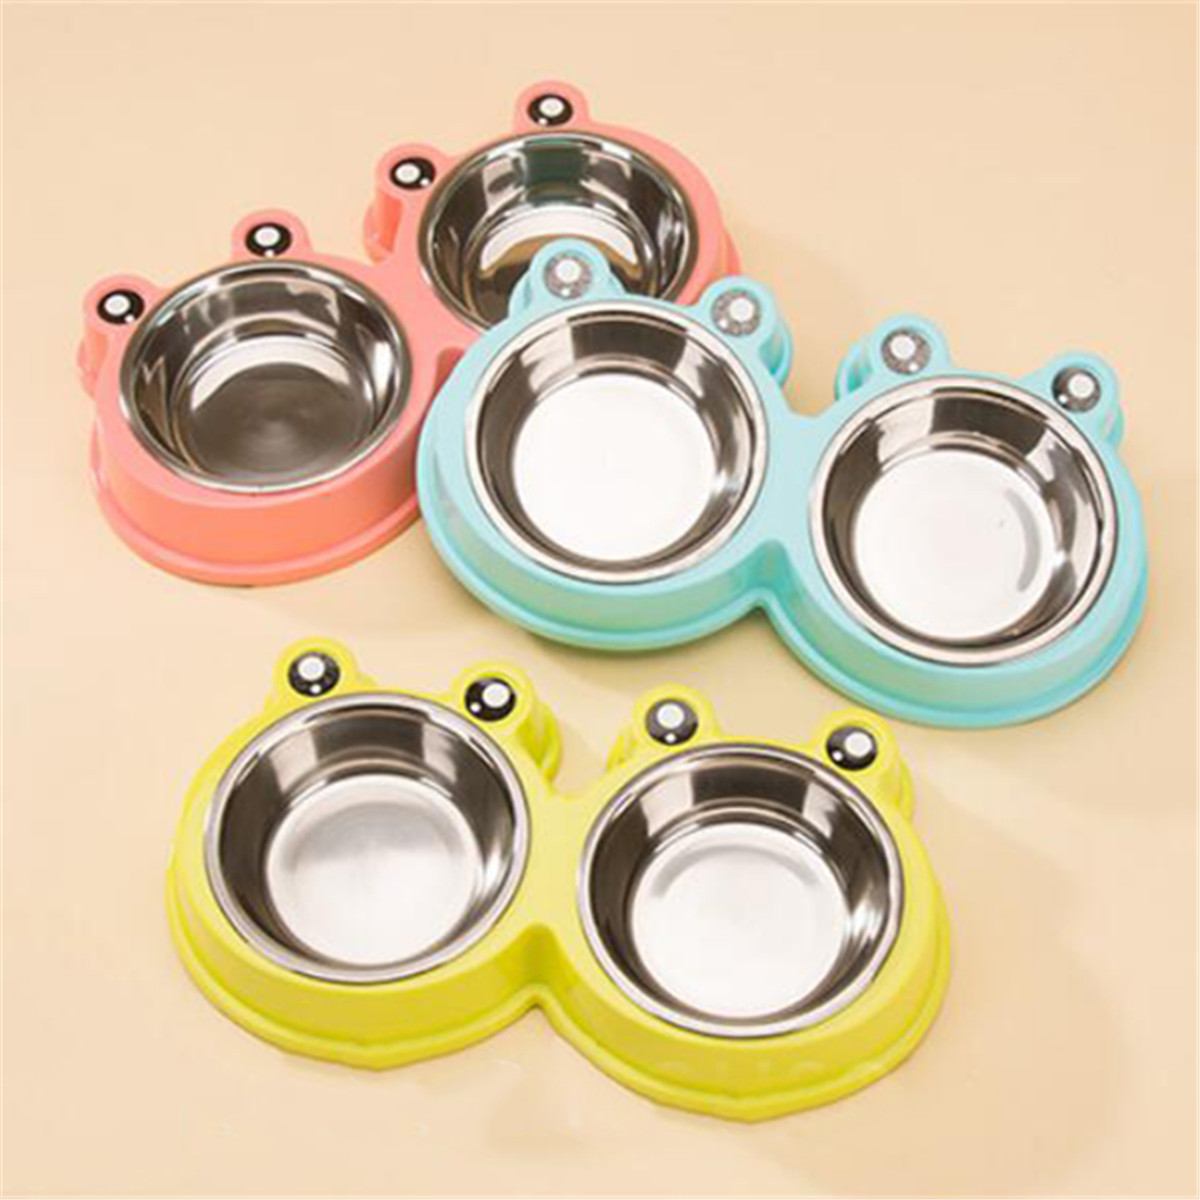 Double Dog Bowls Cute Stainless Steel Dog Bowl Non-Skid Feeder Bowls Pet Bowl Puppy bowl for Dogs Cats and Pets Water Food Bowl